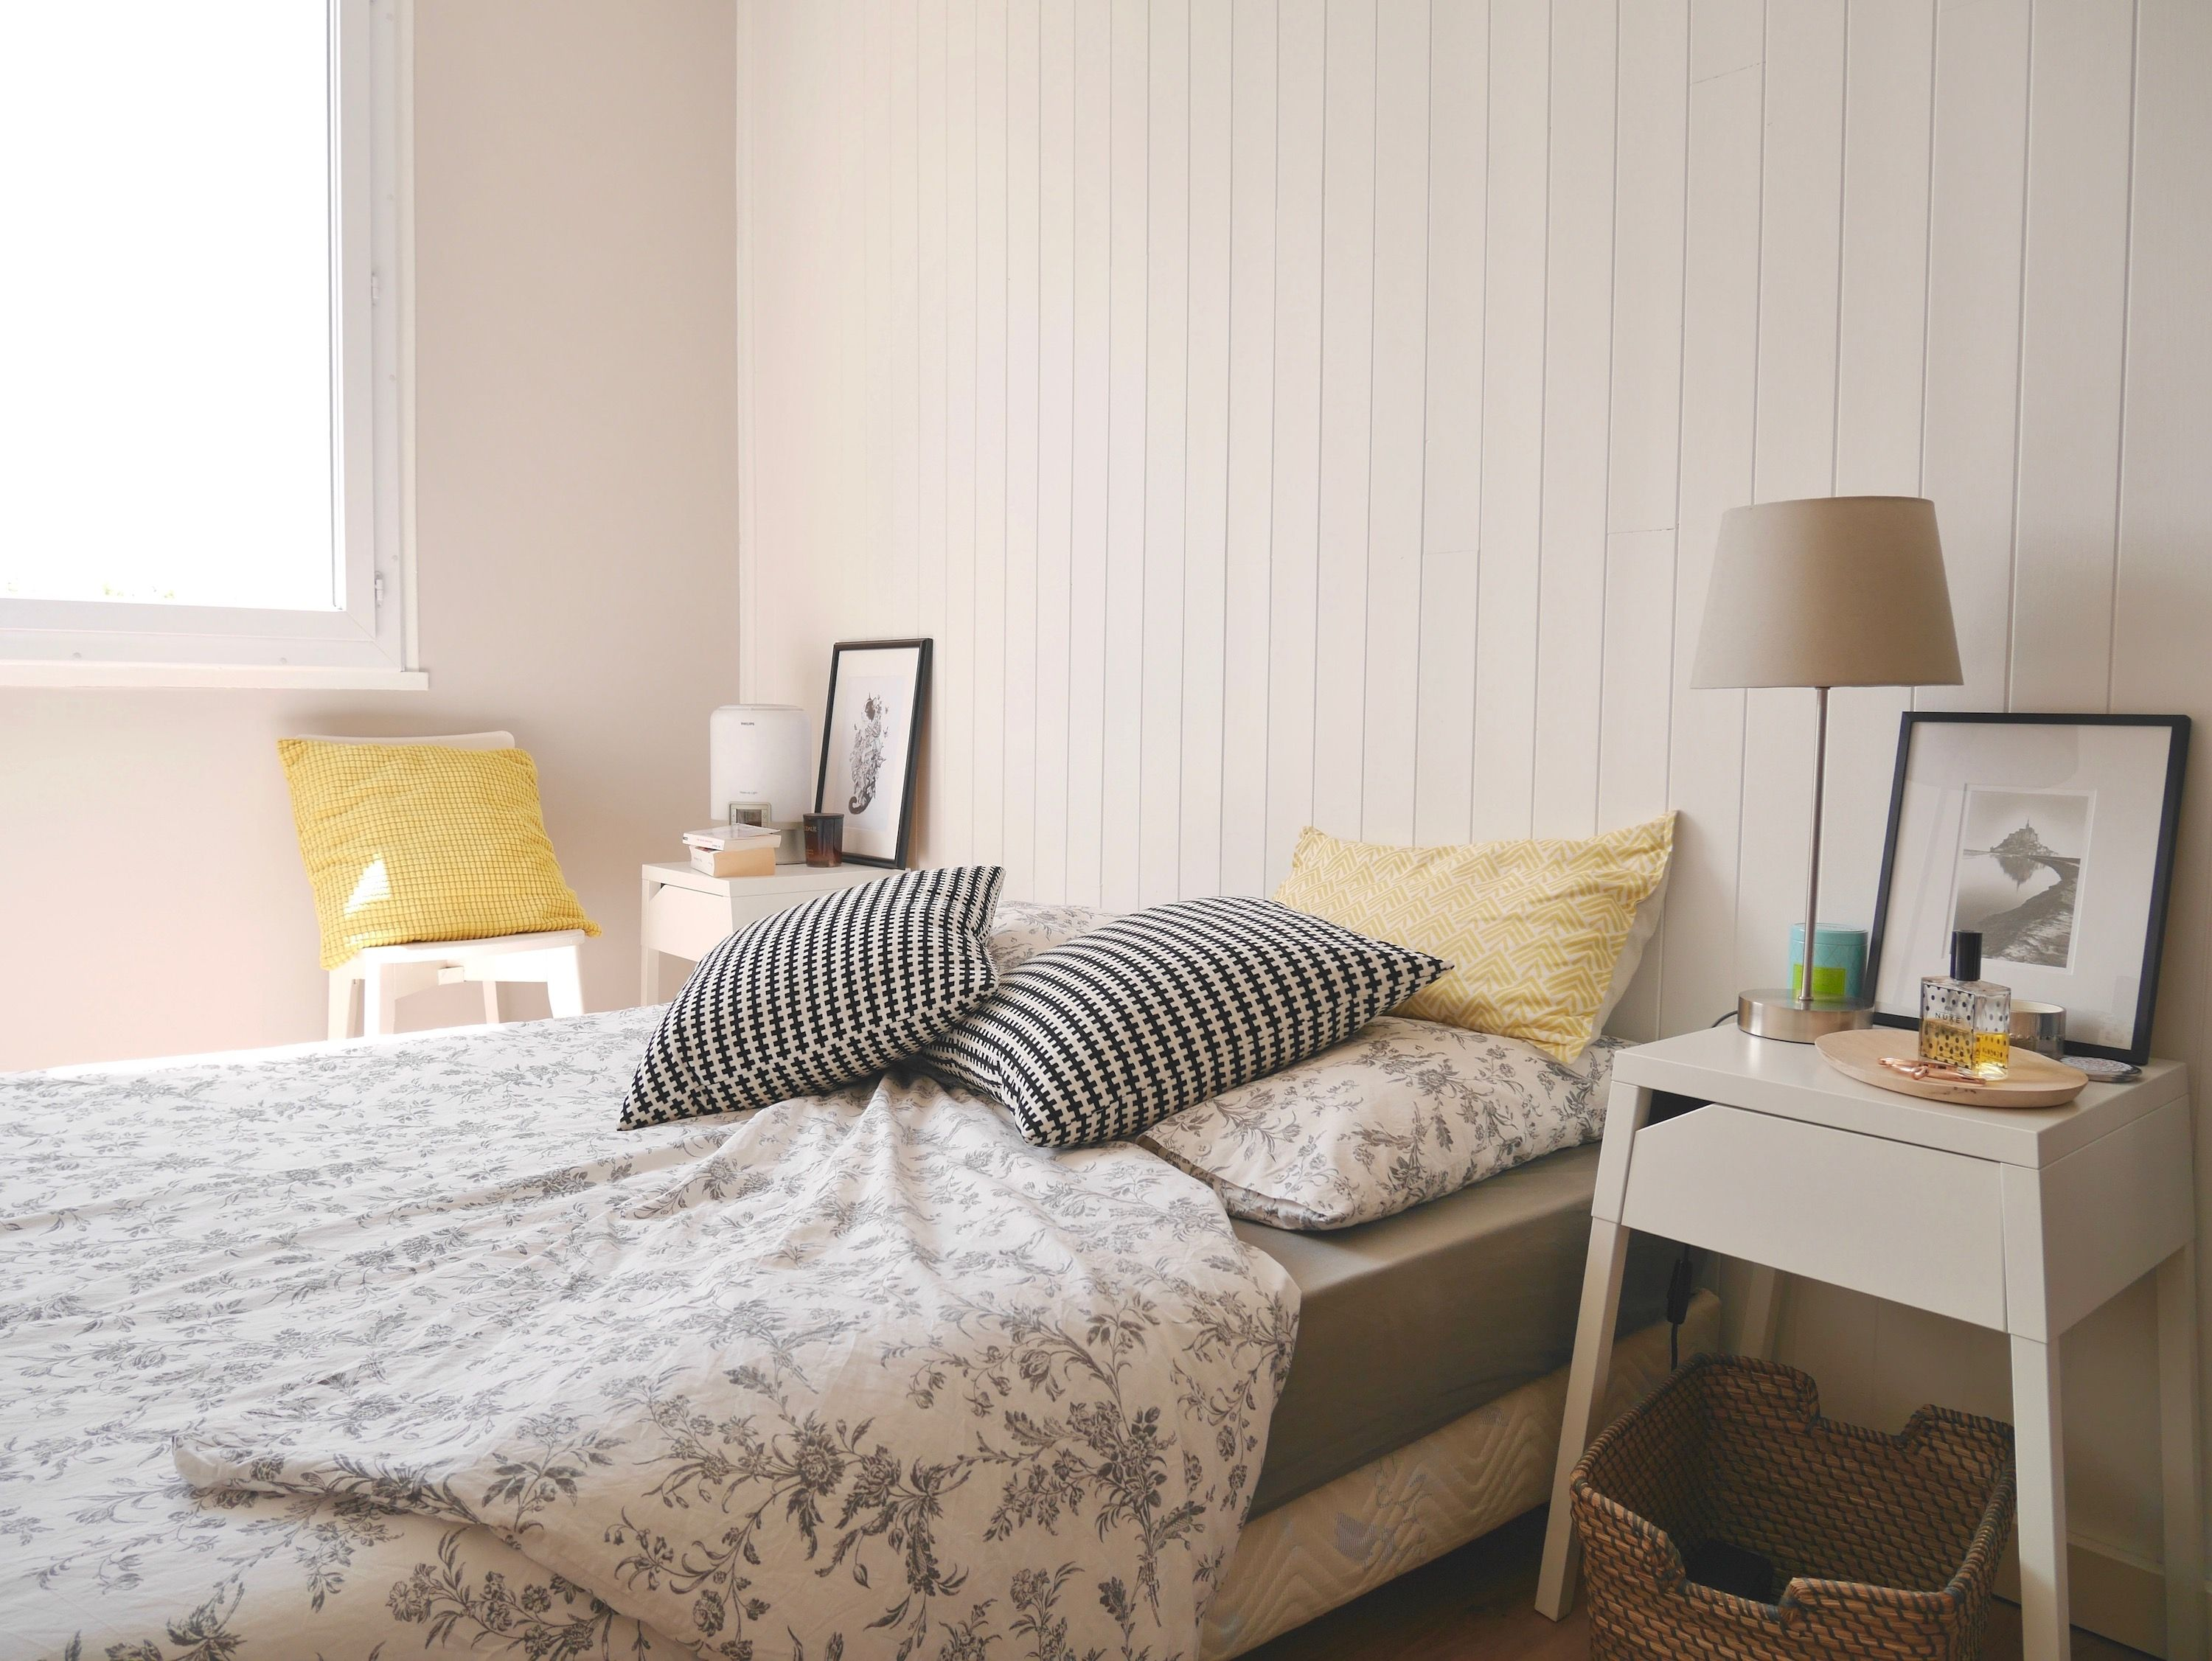 Inspiration décoration chambre mademoisellemodeuse